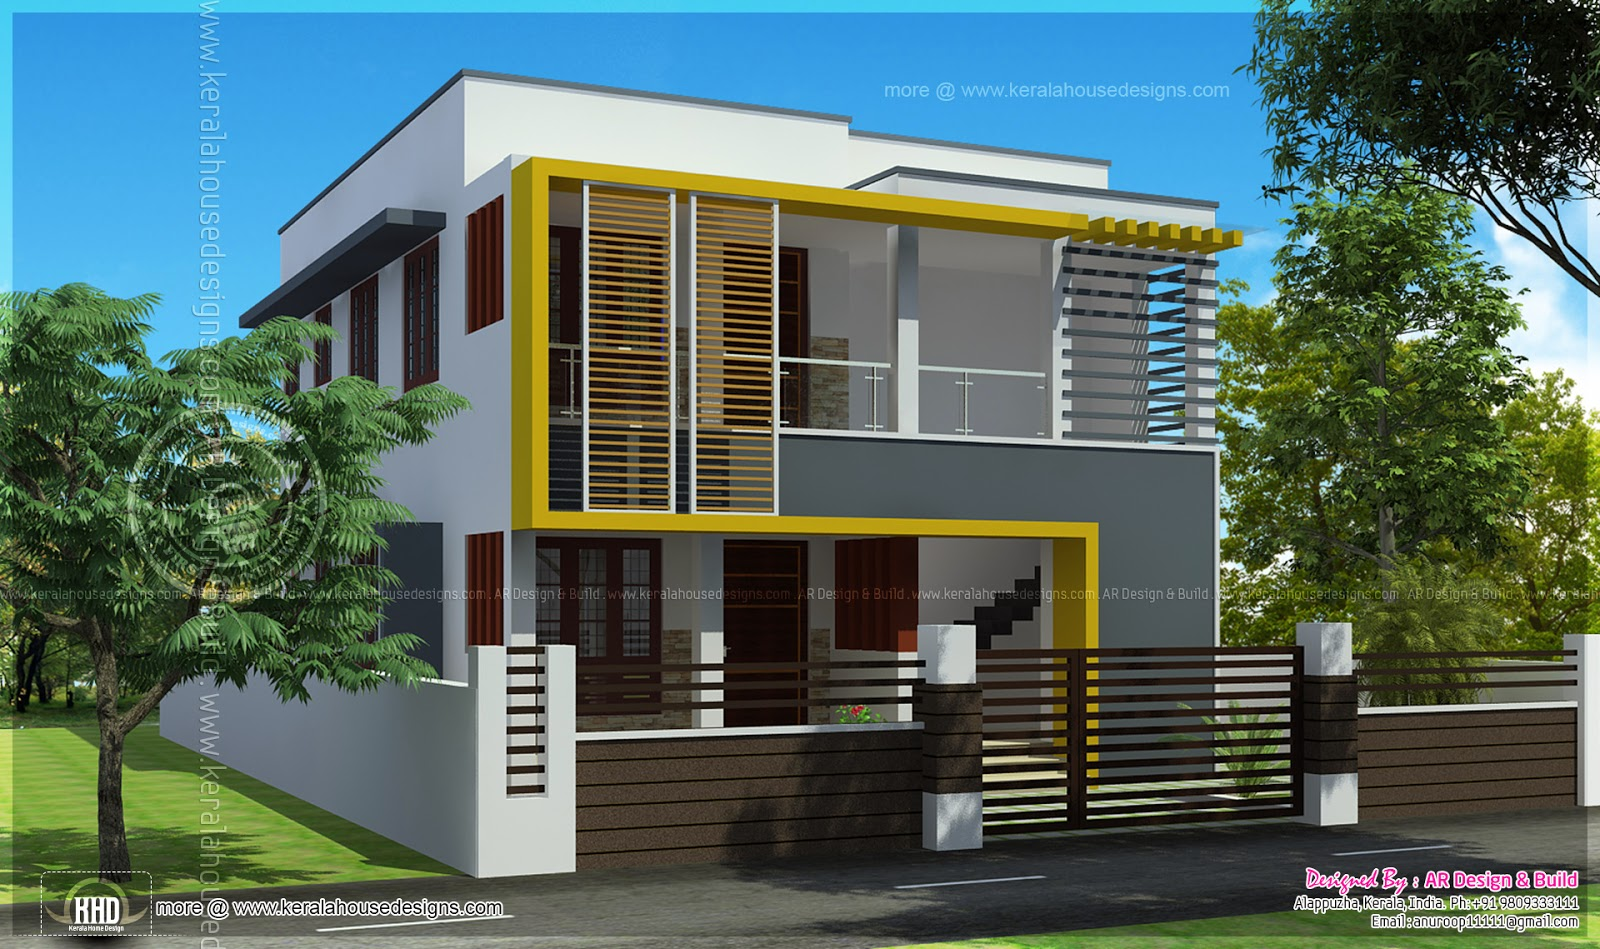 Duplex house elevation 1000 sq feet each kerala home for Design duplex house architecture india